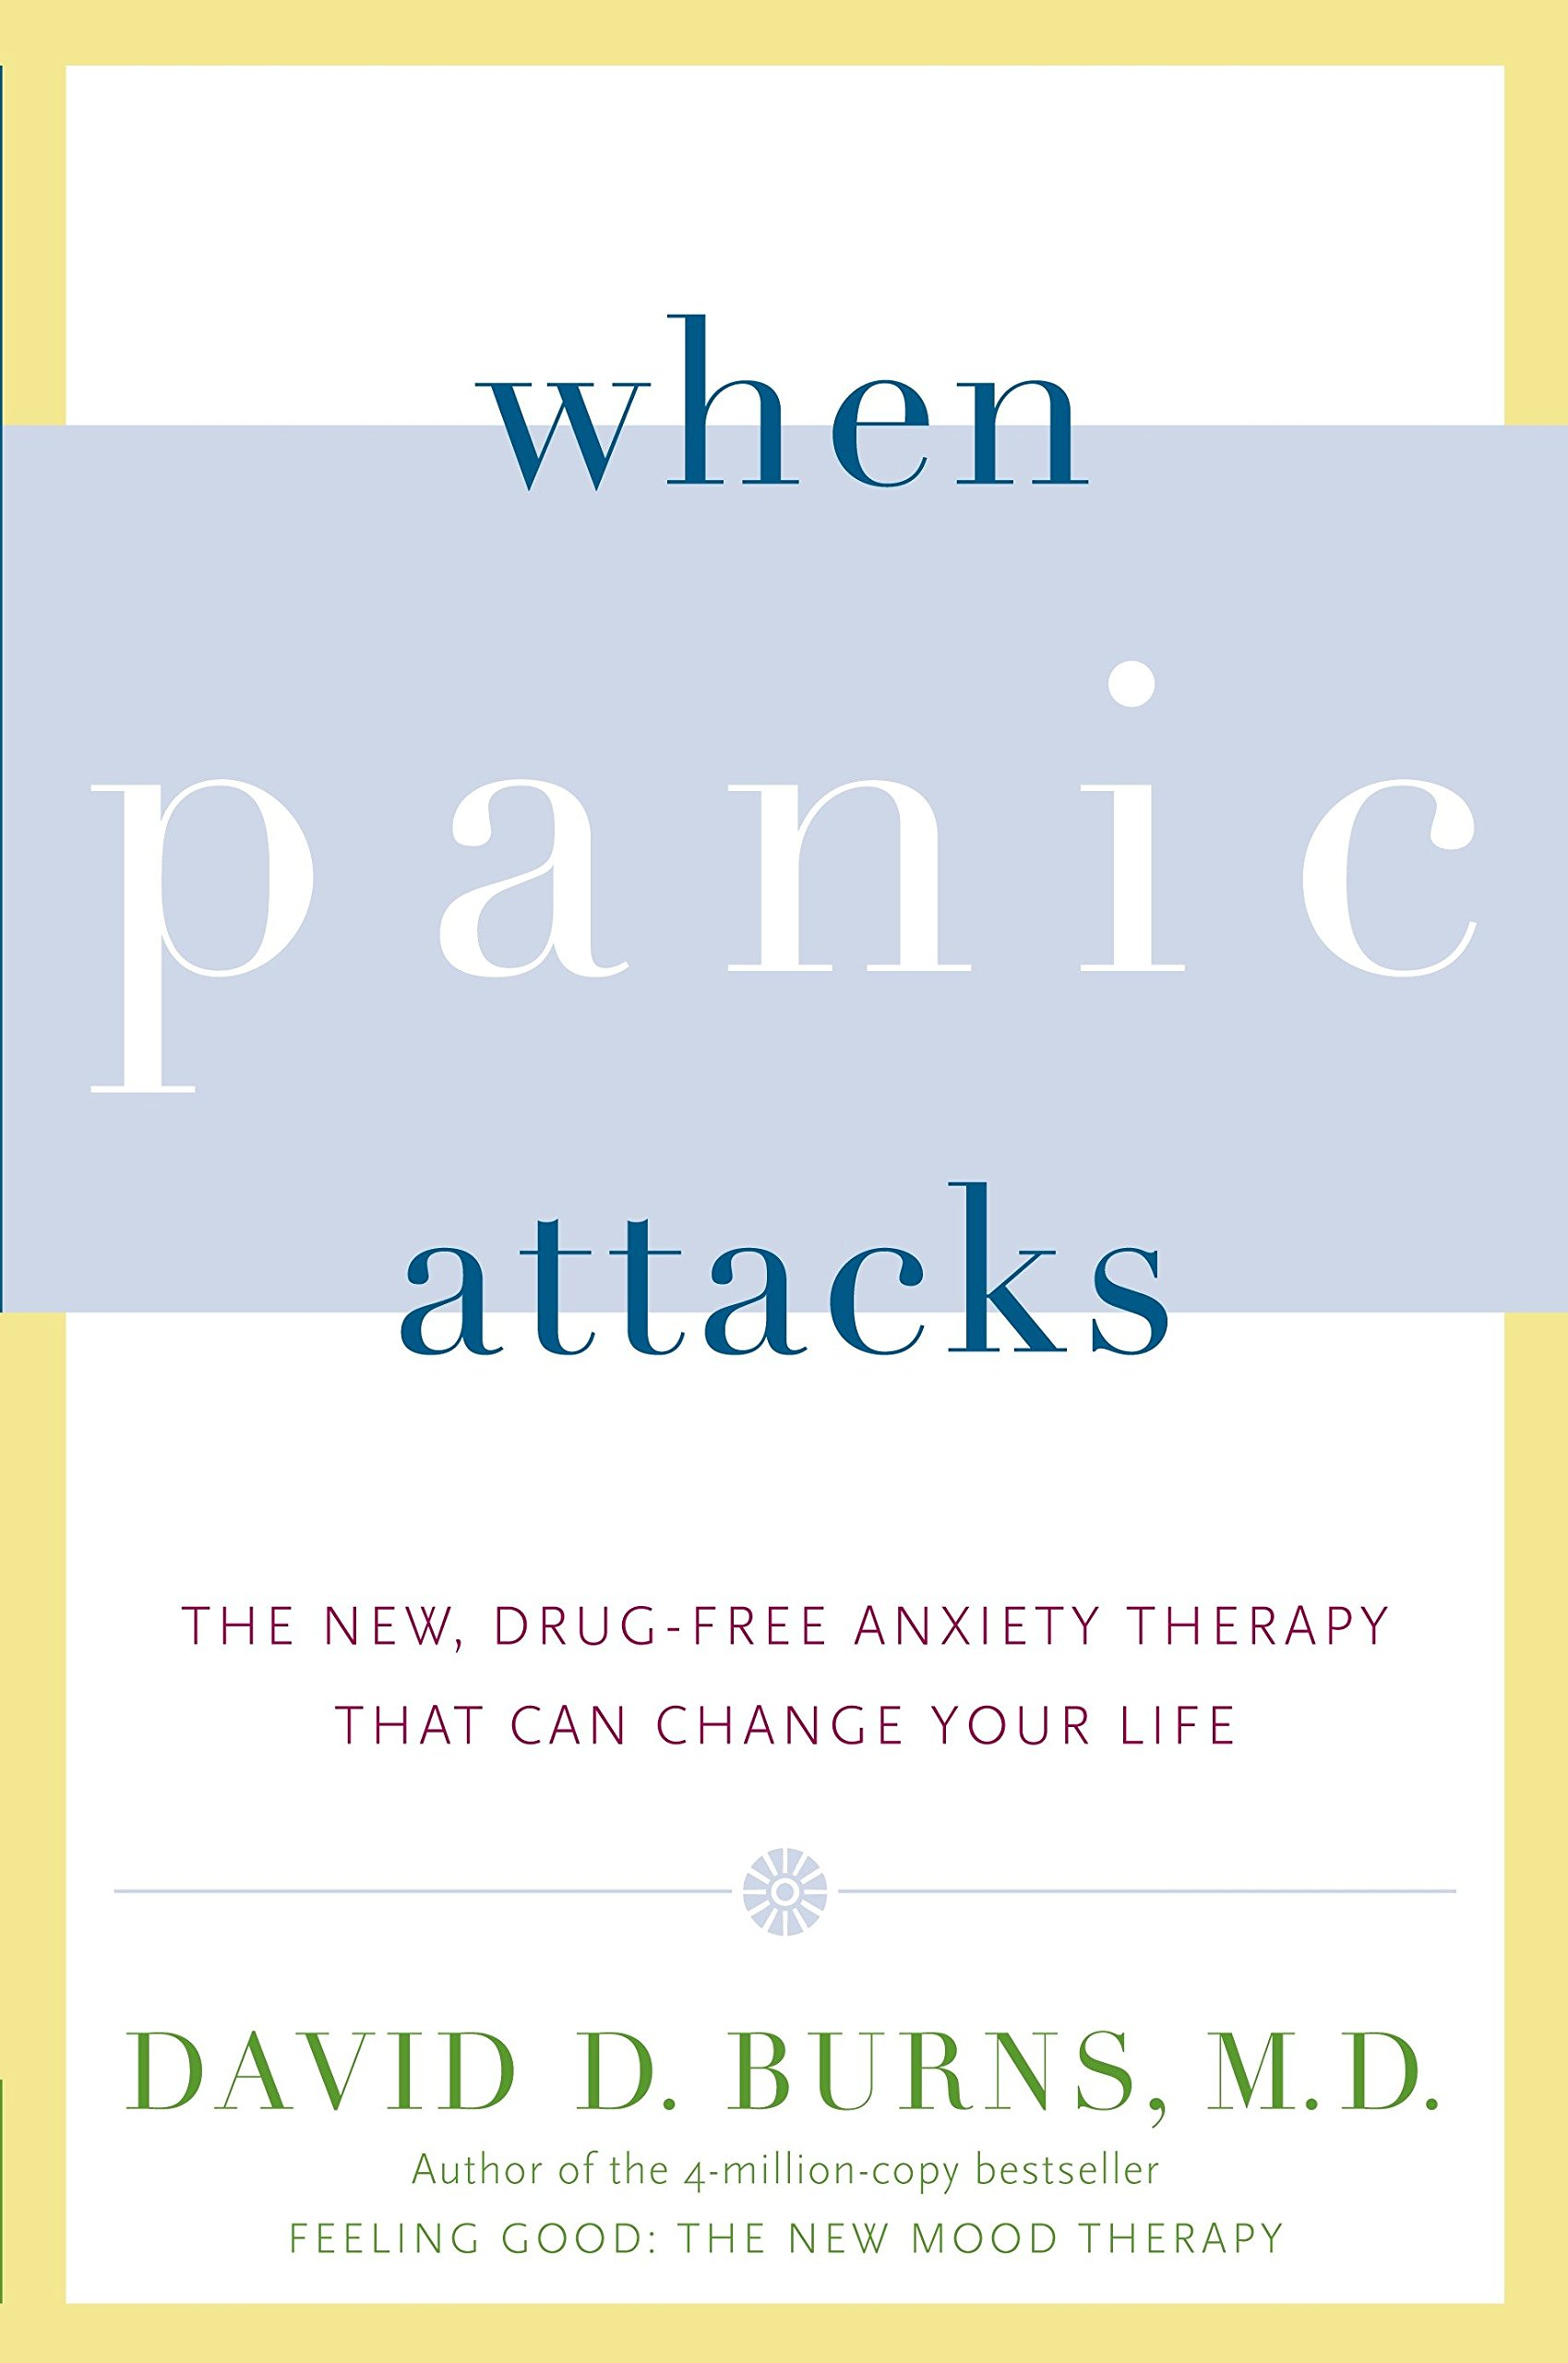 Image OfWhen Panic Attacks: The New, Drug-Free Anxiety Therapy That Can Change Your Life.